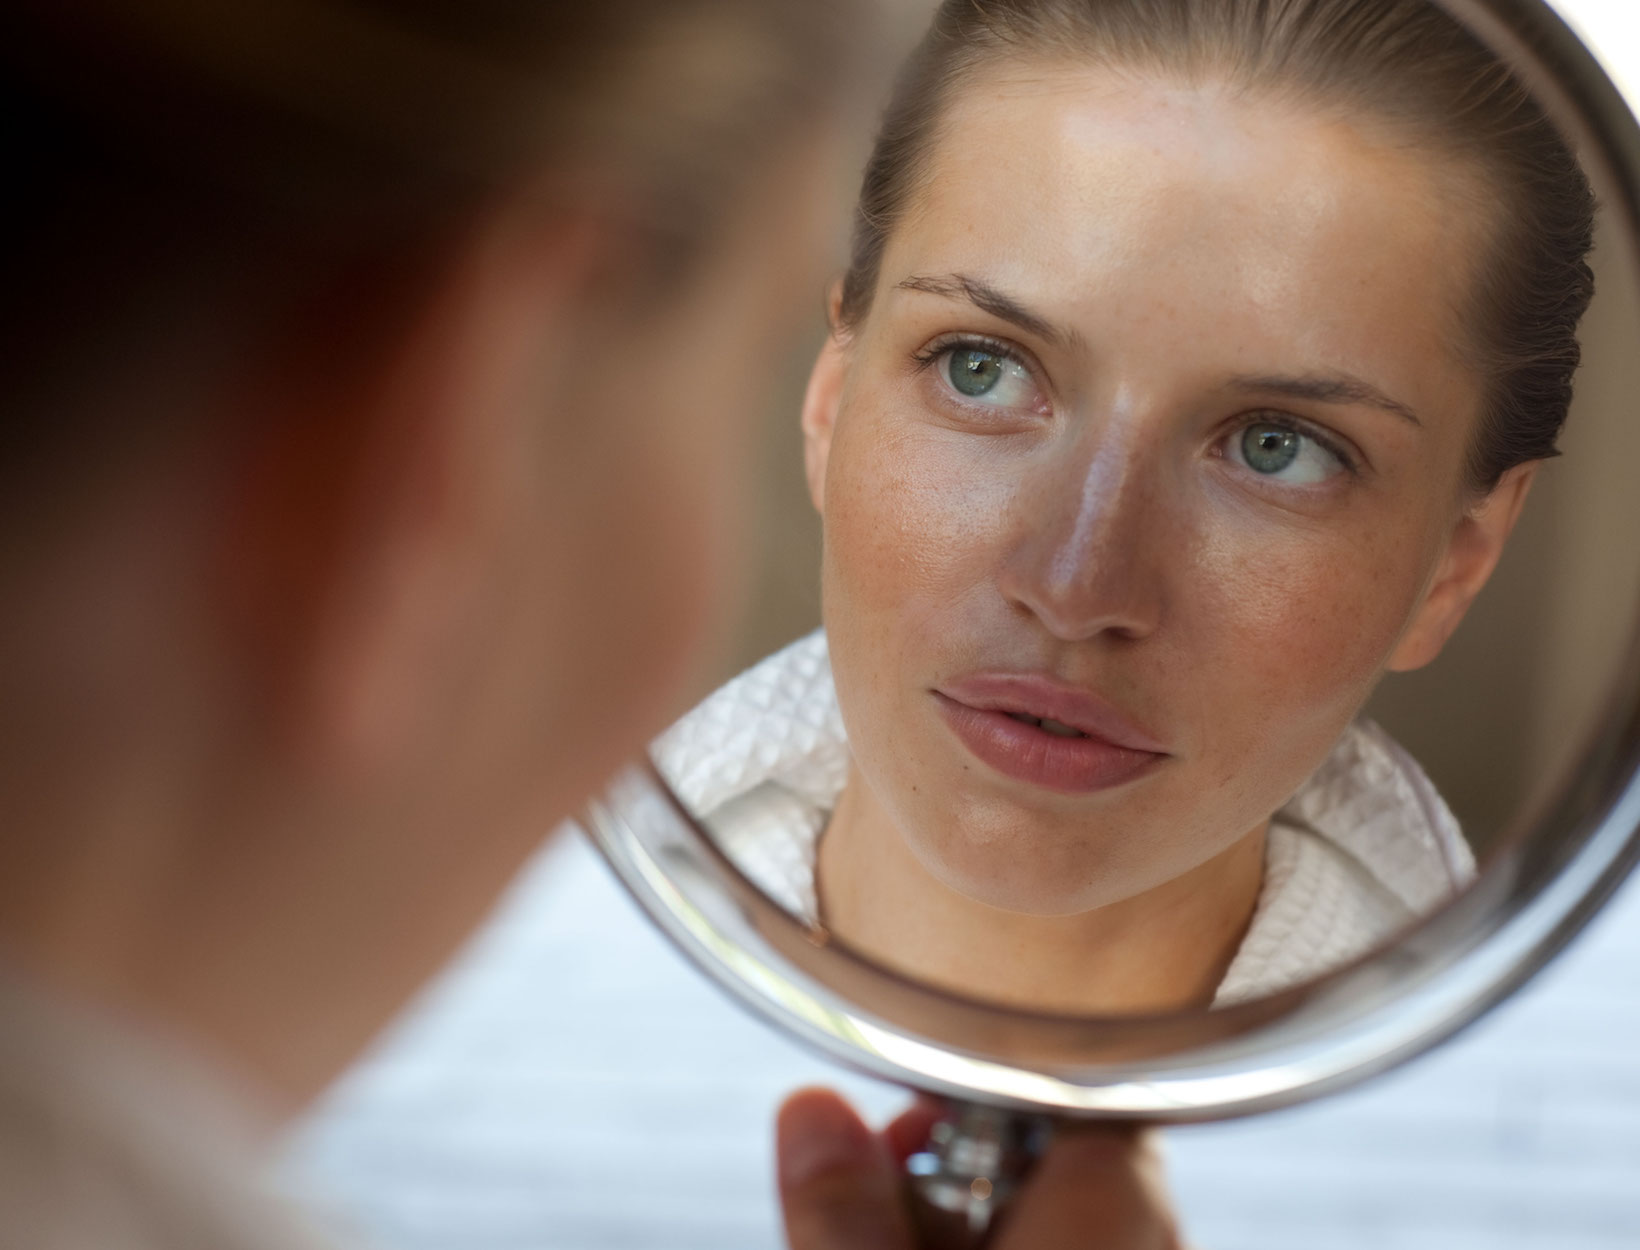 7 Step Clear Skin Routine Clean Skincare For Acne Goop